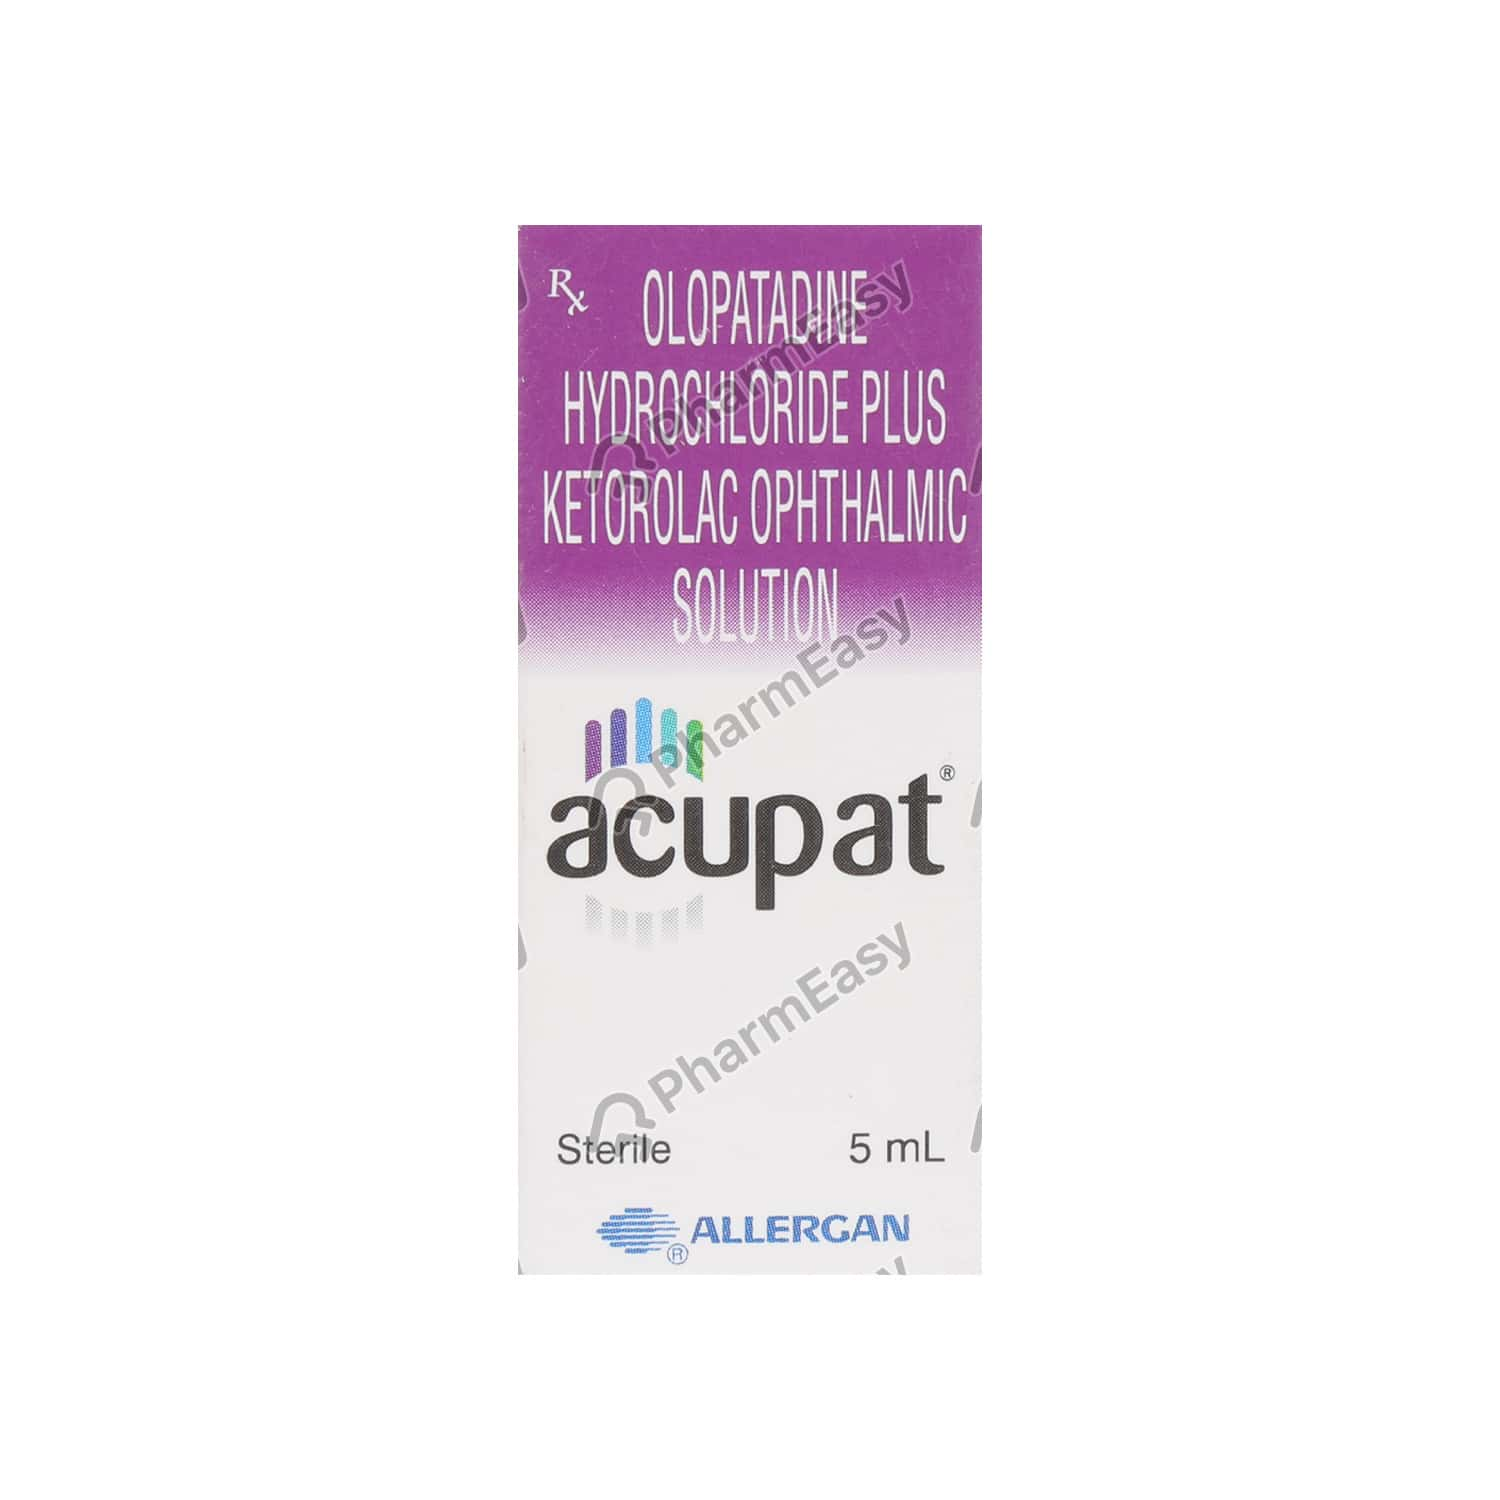 Acupat Eye Drops